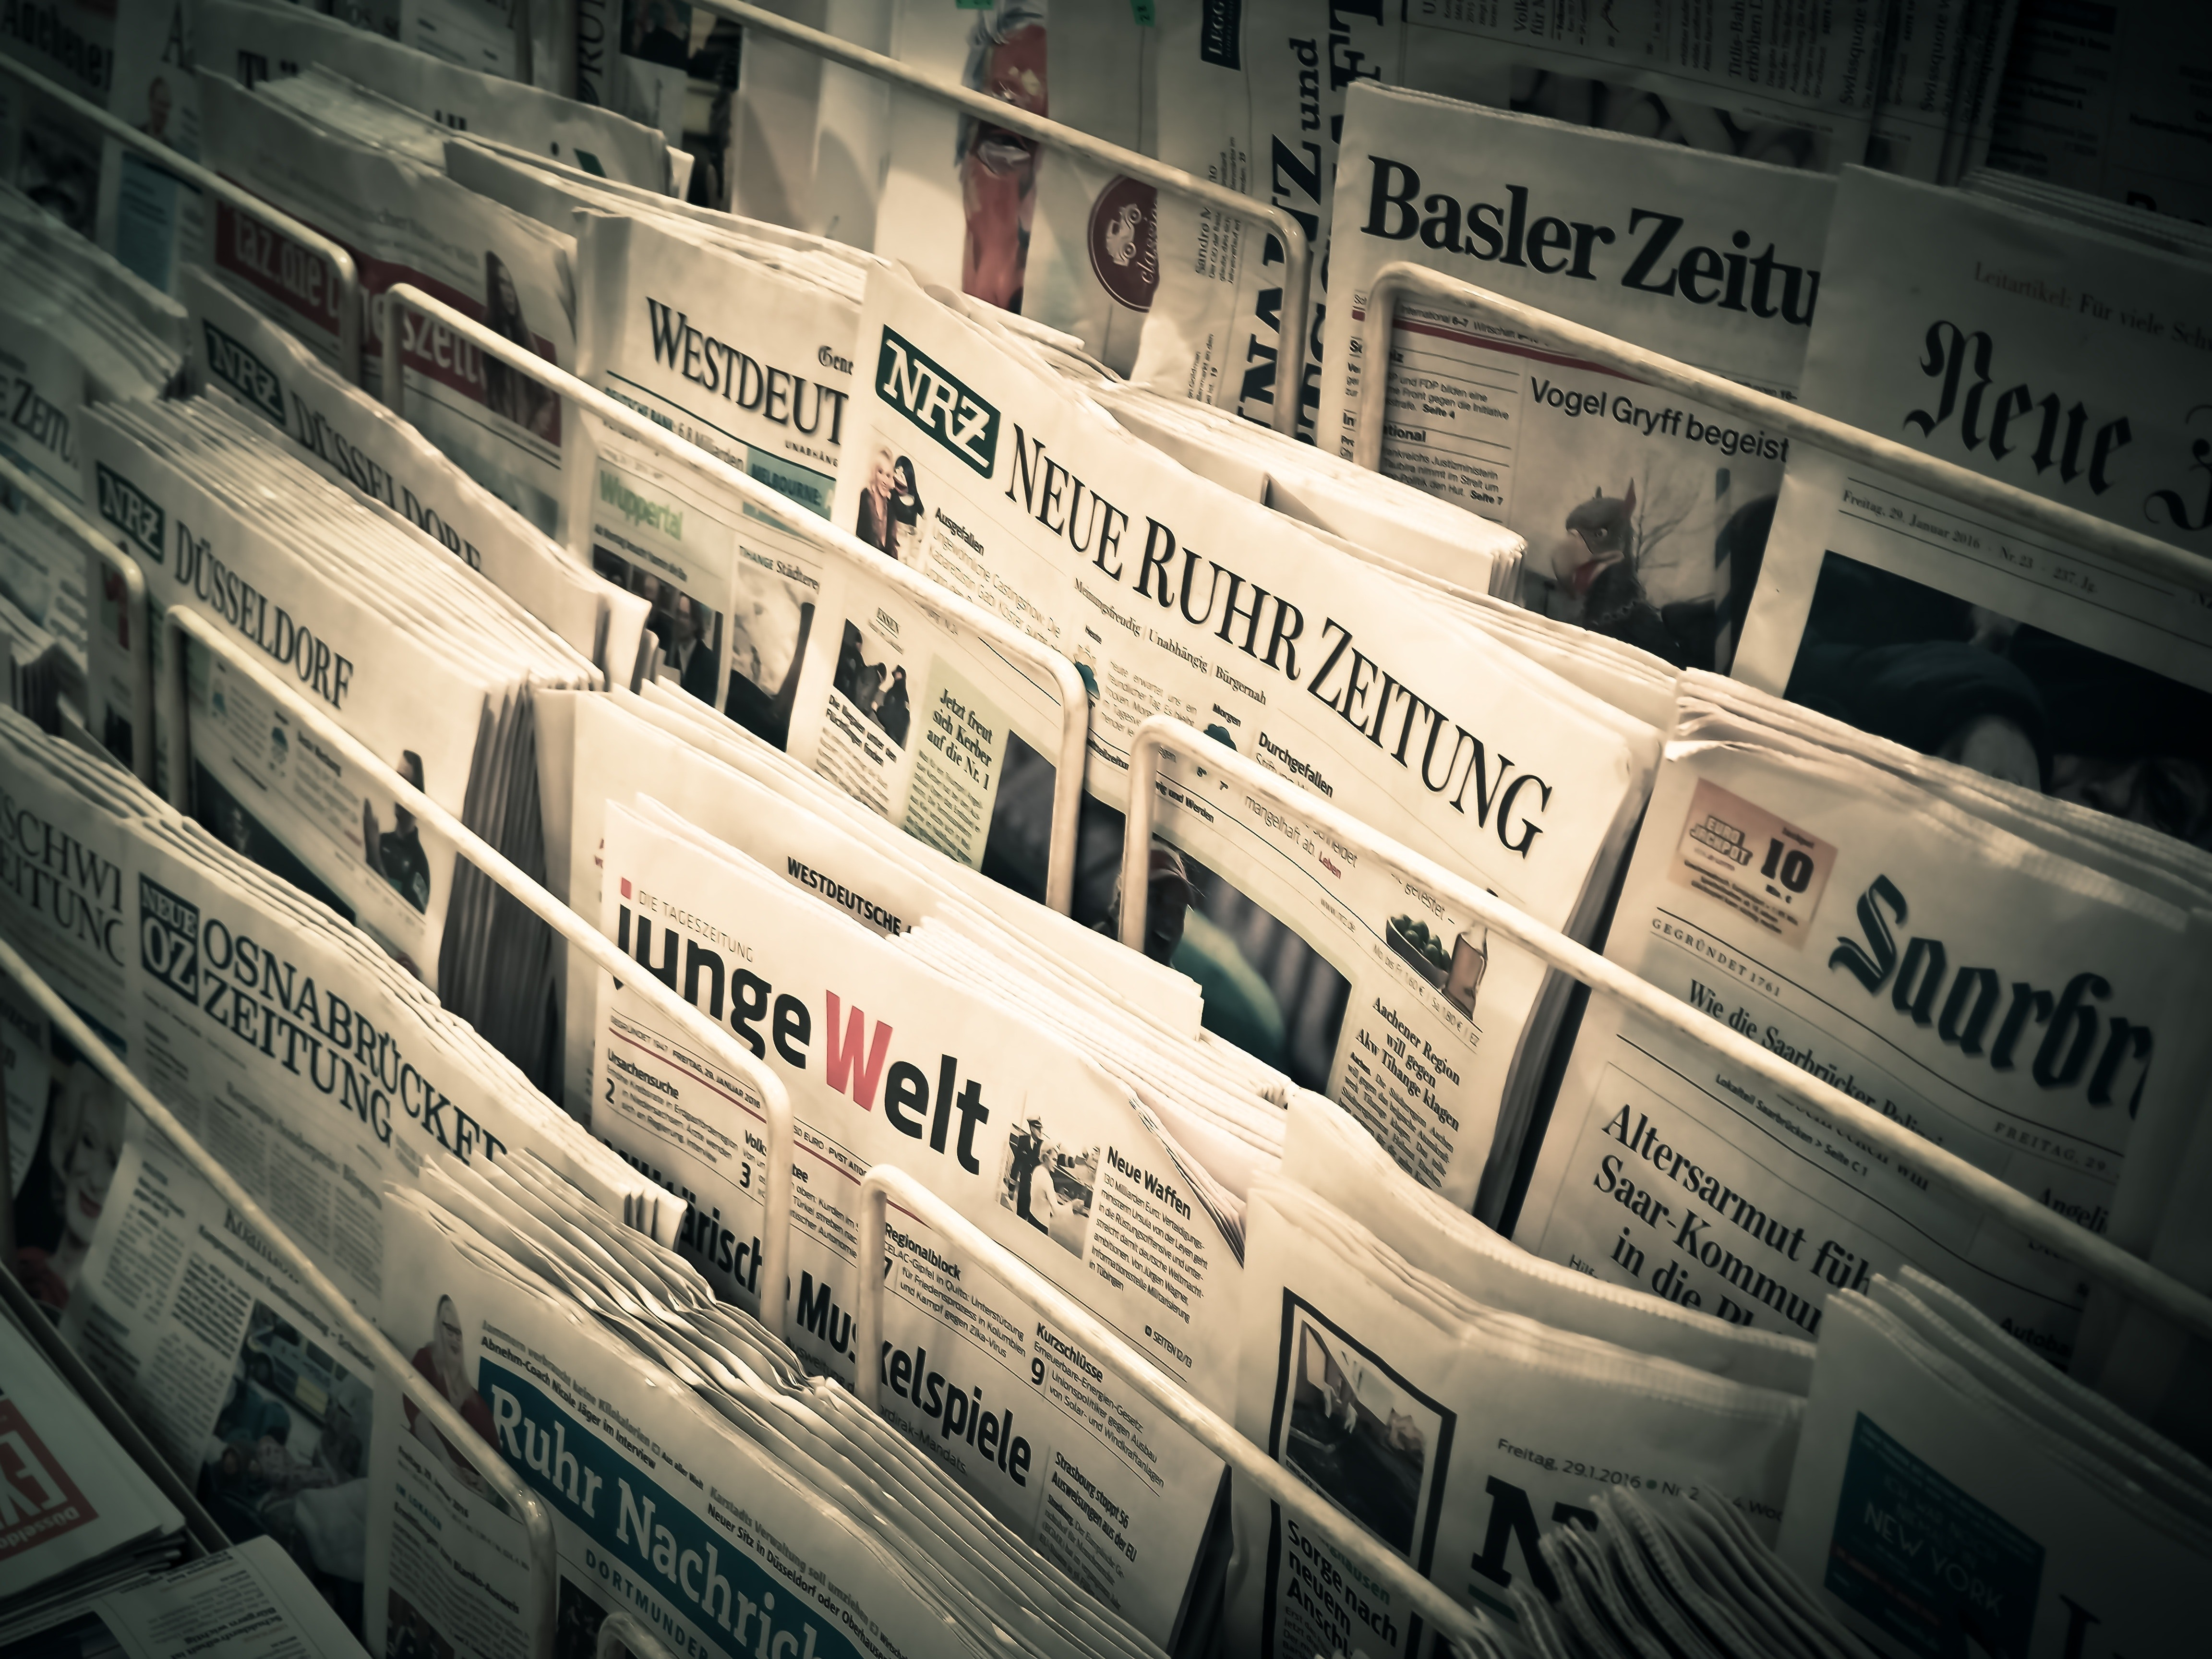 Follow the News in Spanish, Chinese, Russian with These 5 NYC Newspapers